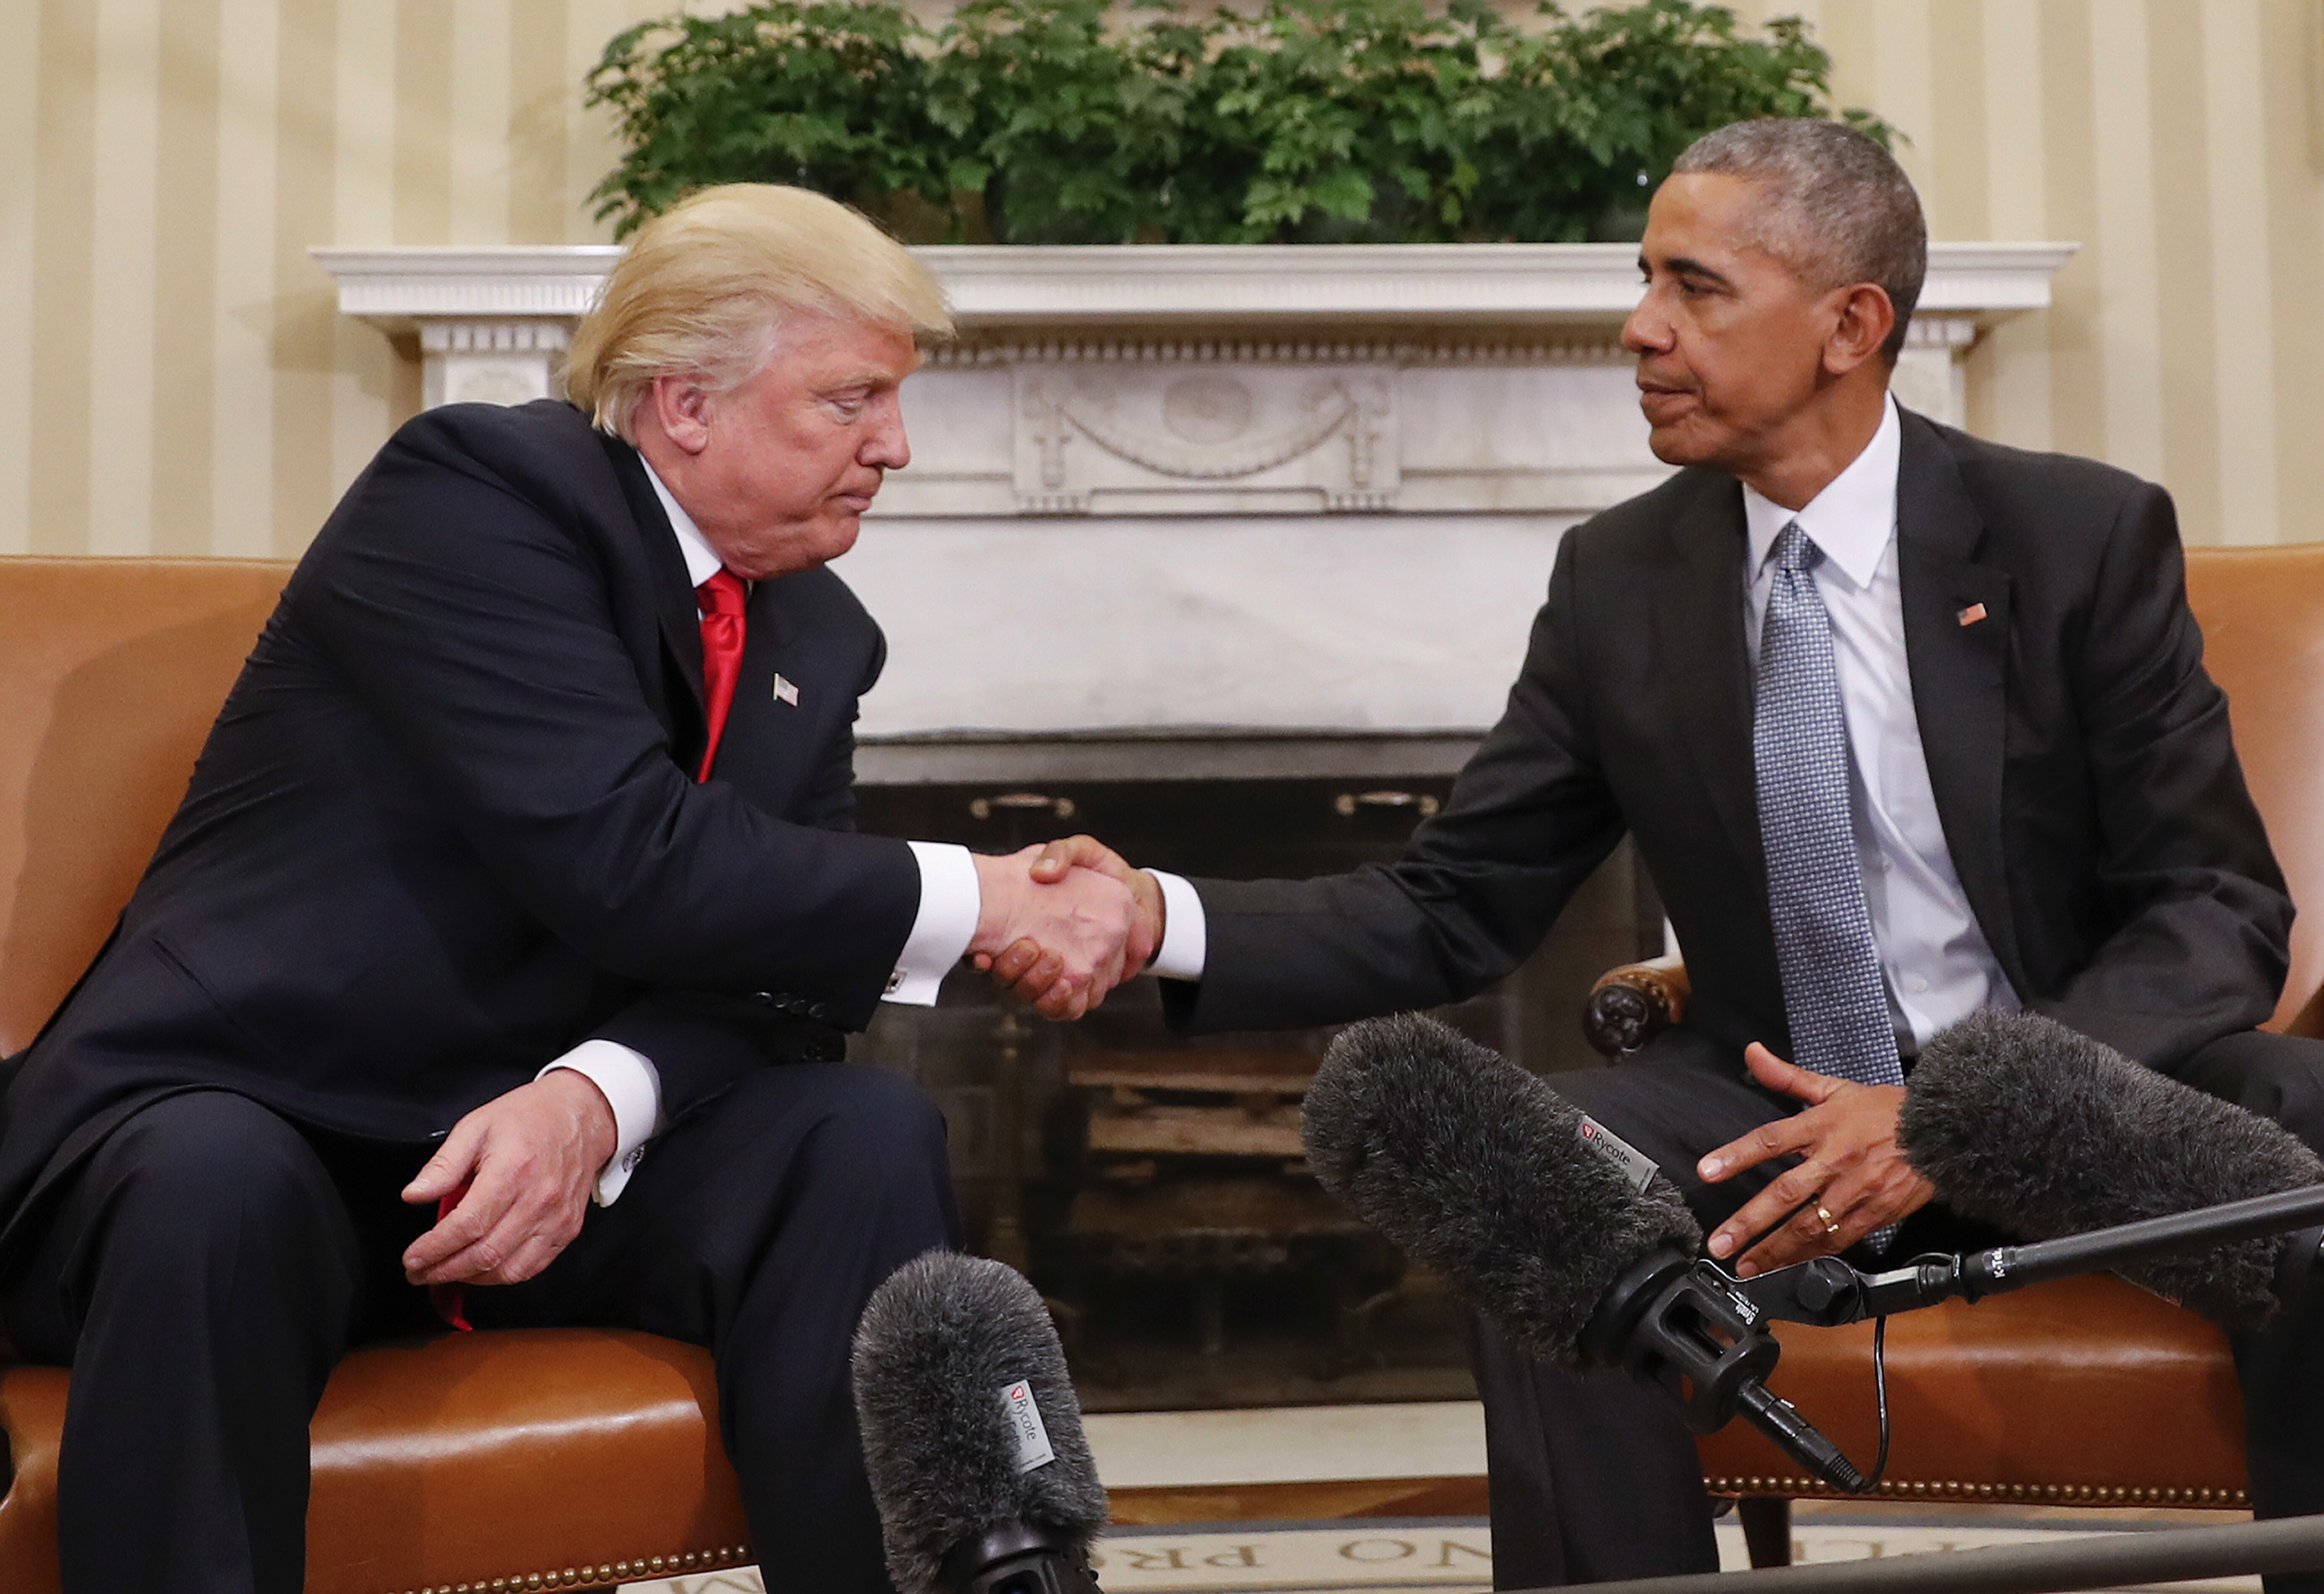 US 'satisfaction' best in 15 years, Trump's high 4-times Obama's low